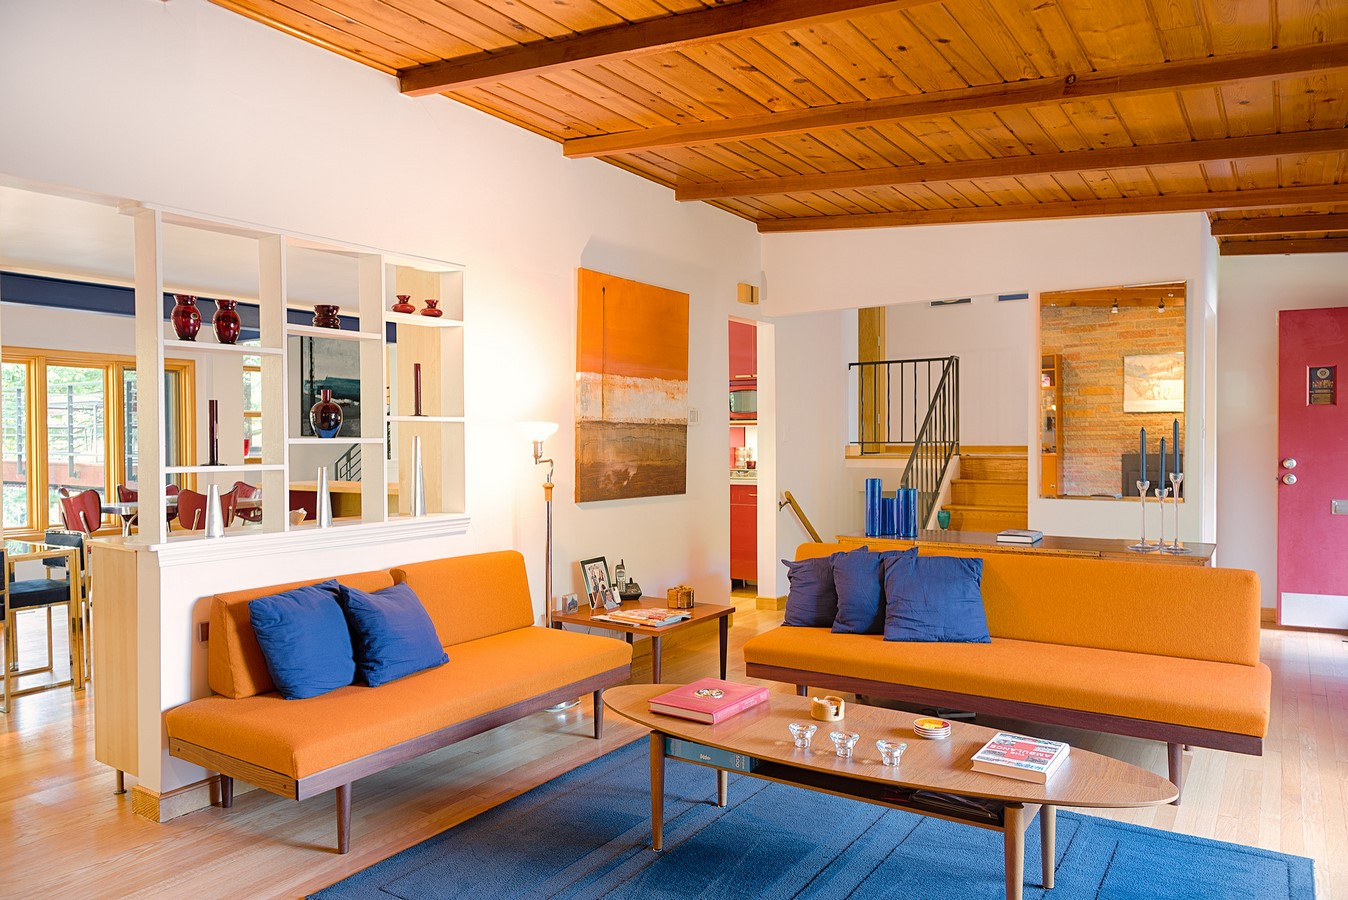 30 Examples of split complementary color scheme in Interiors - Sheet6